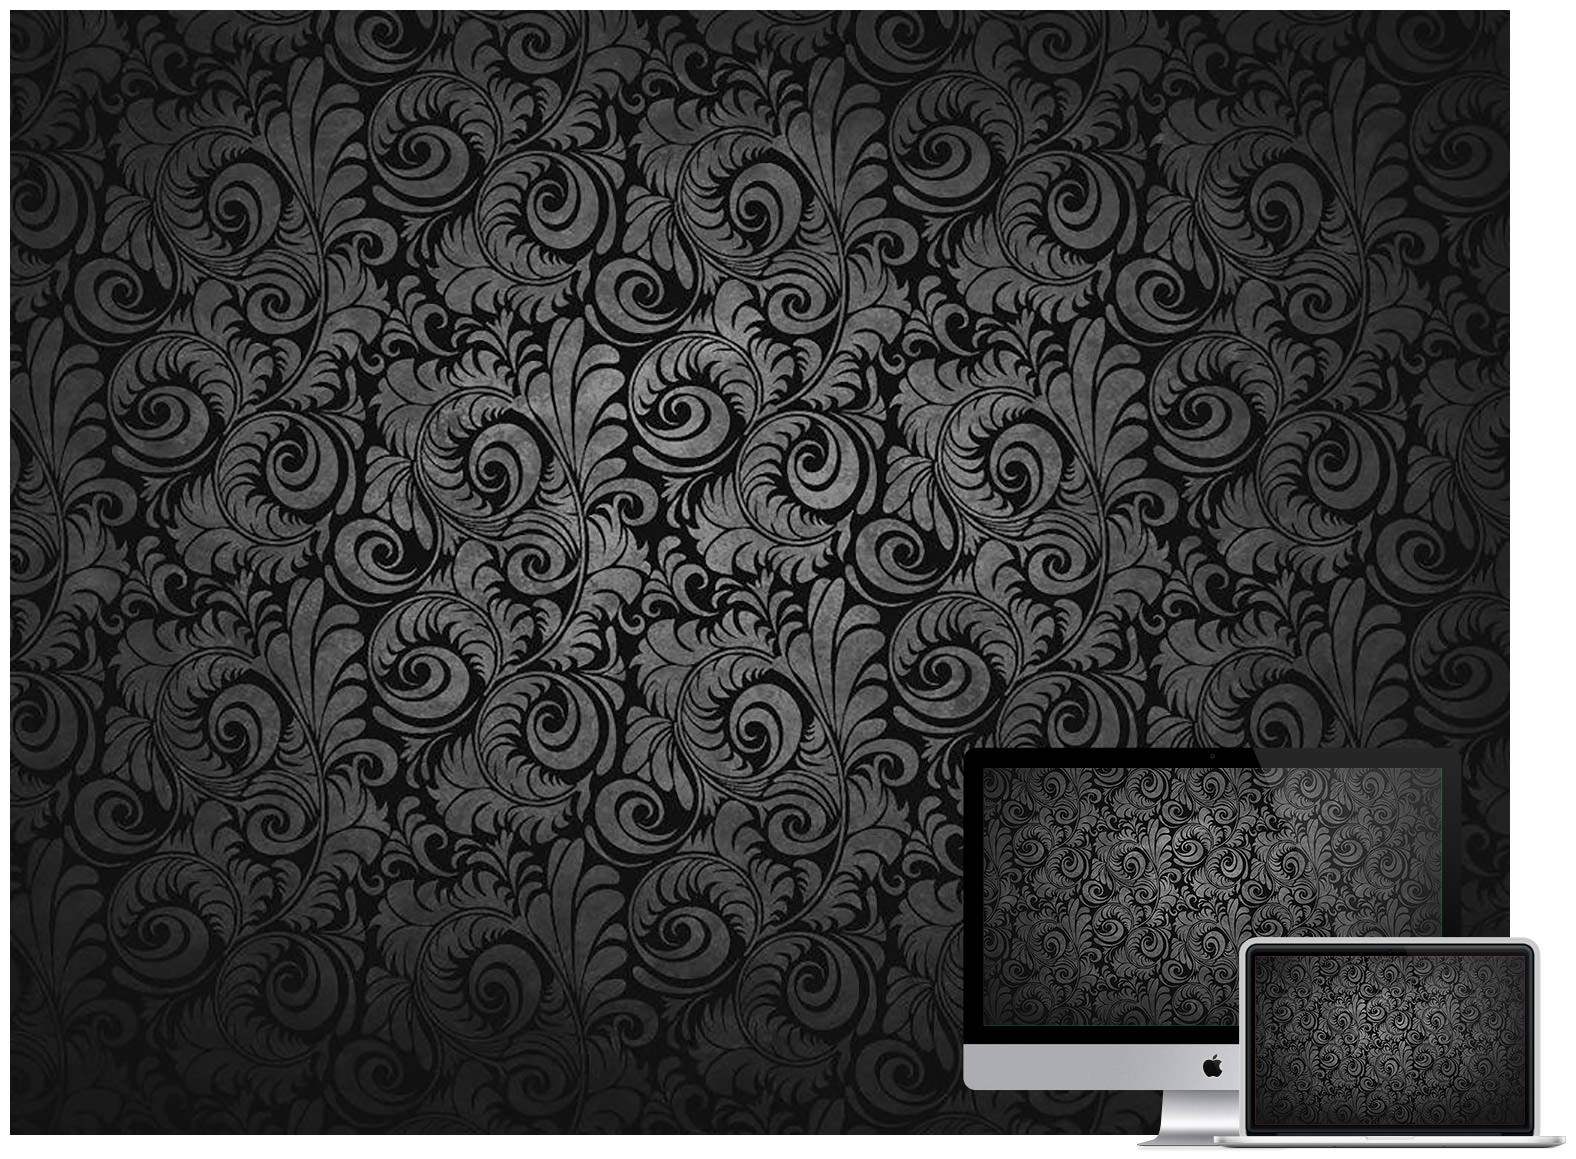 stunning dark wallpapers for your desktop 2020 hongkiat stunning dark wallpapers for your